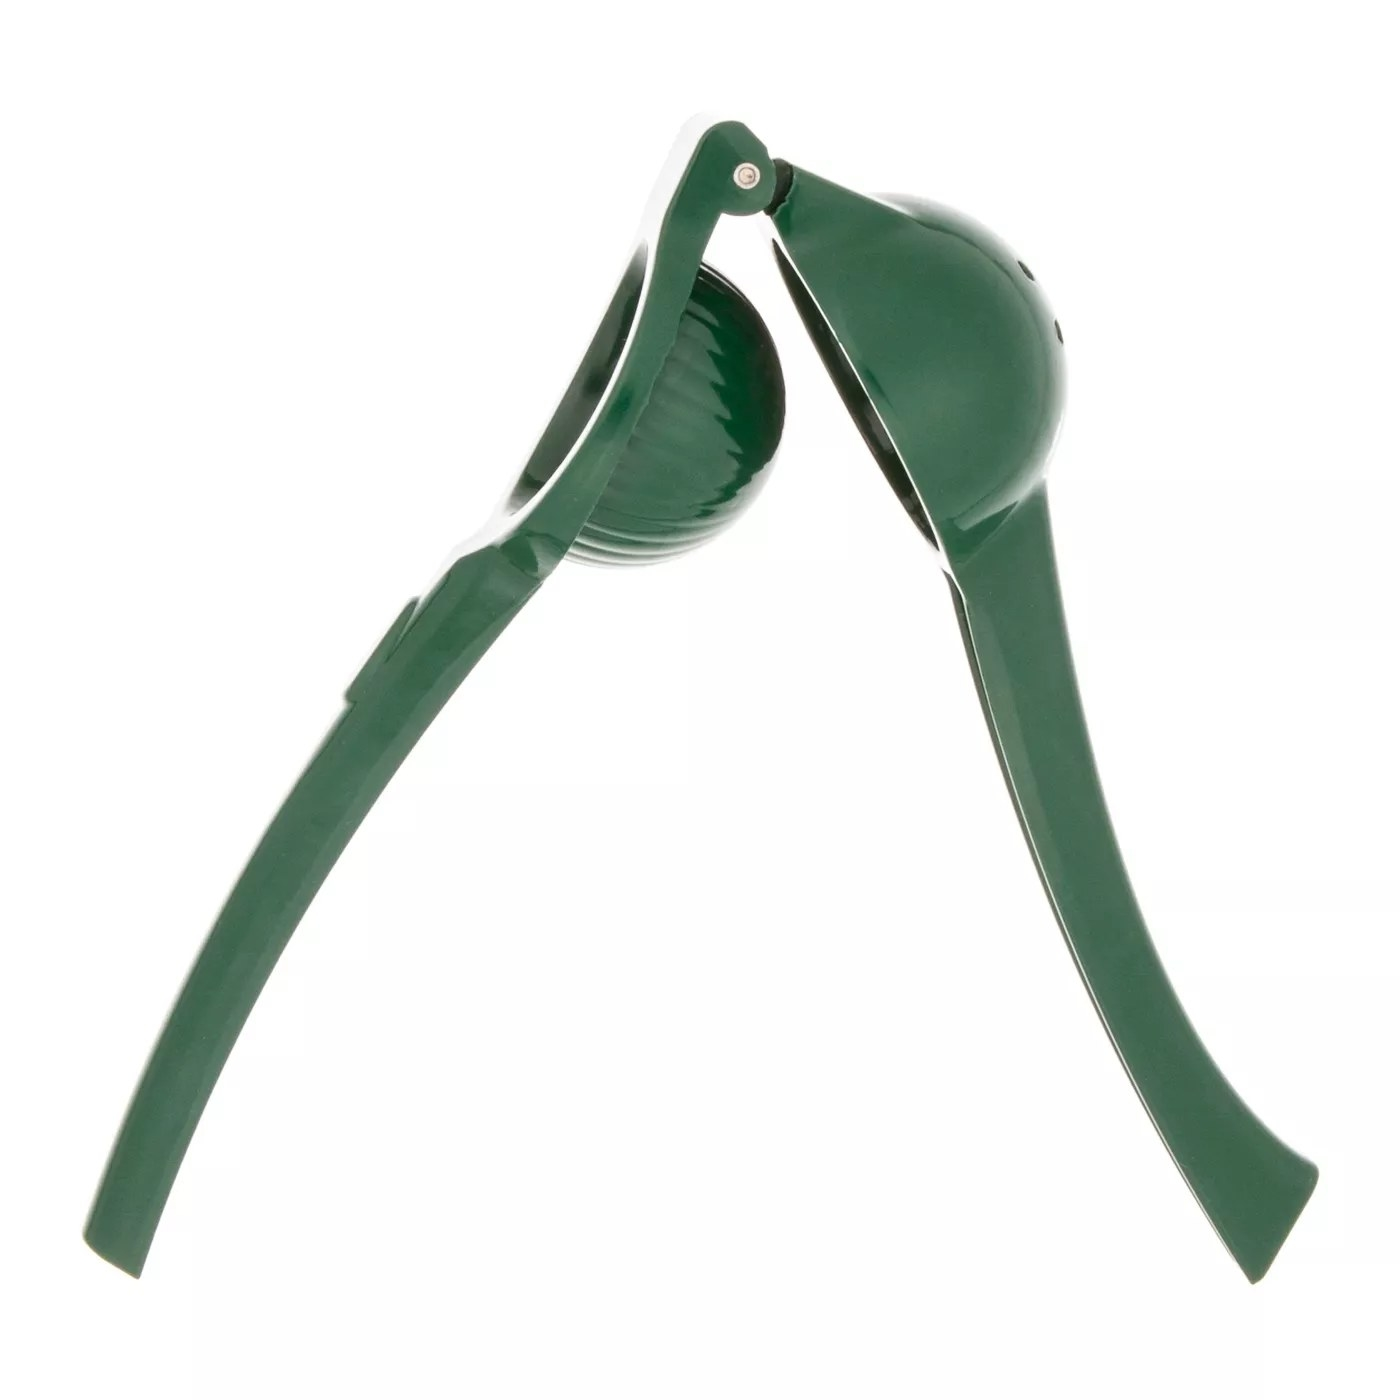 The green lime squeezer